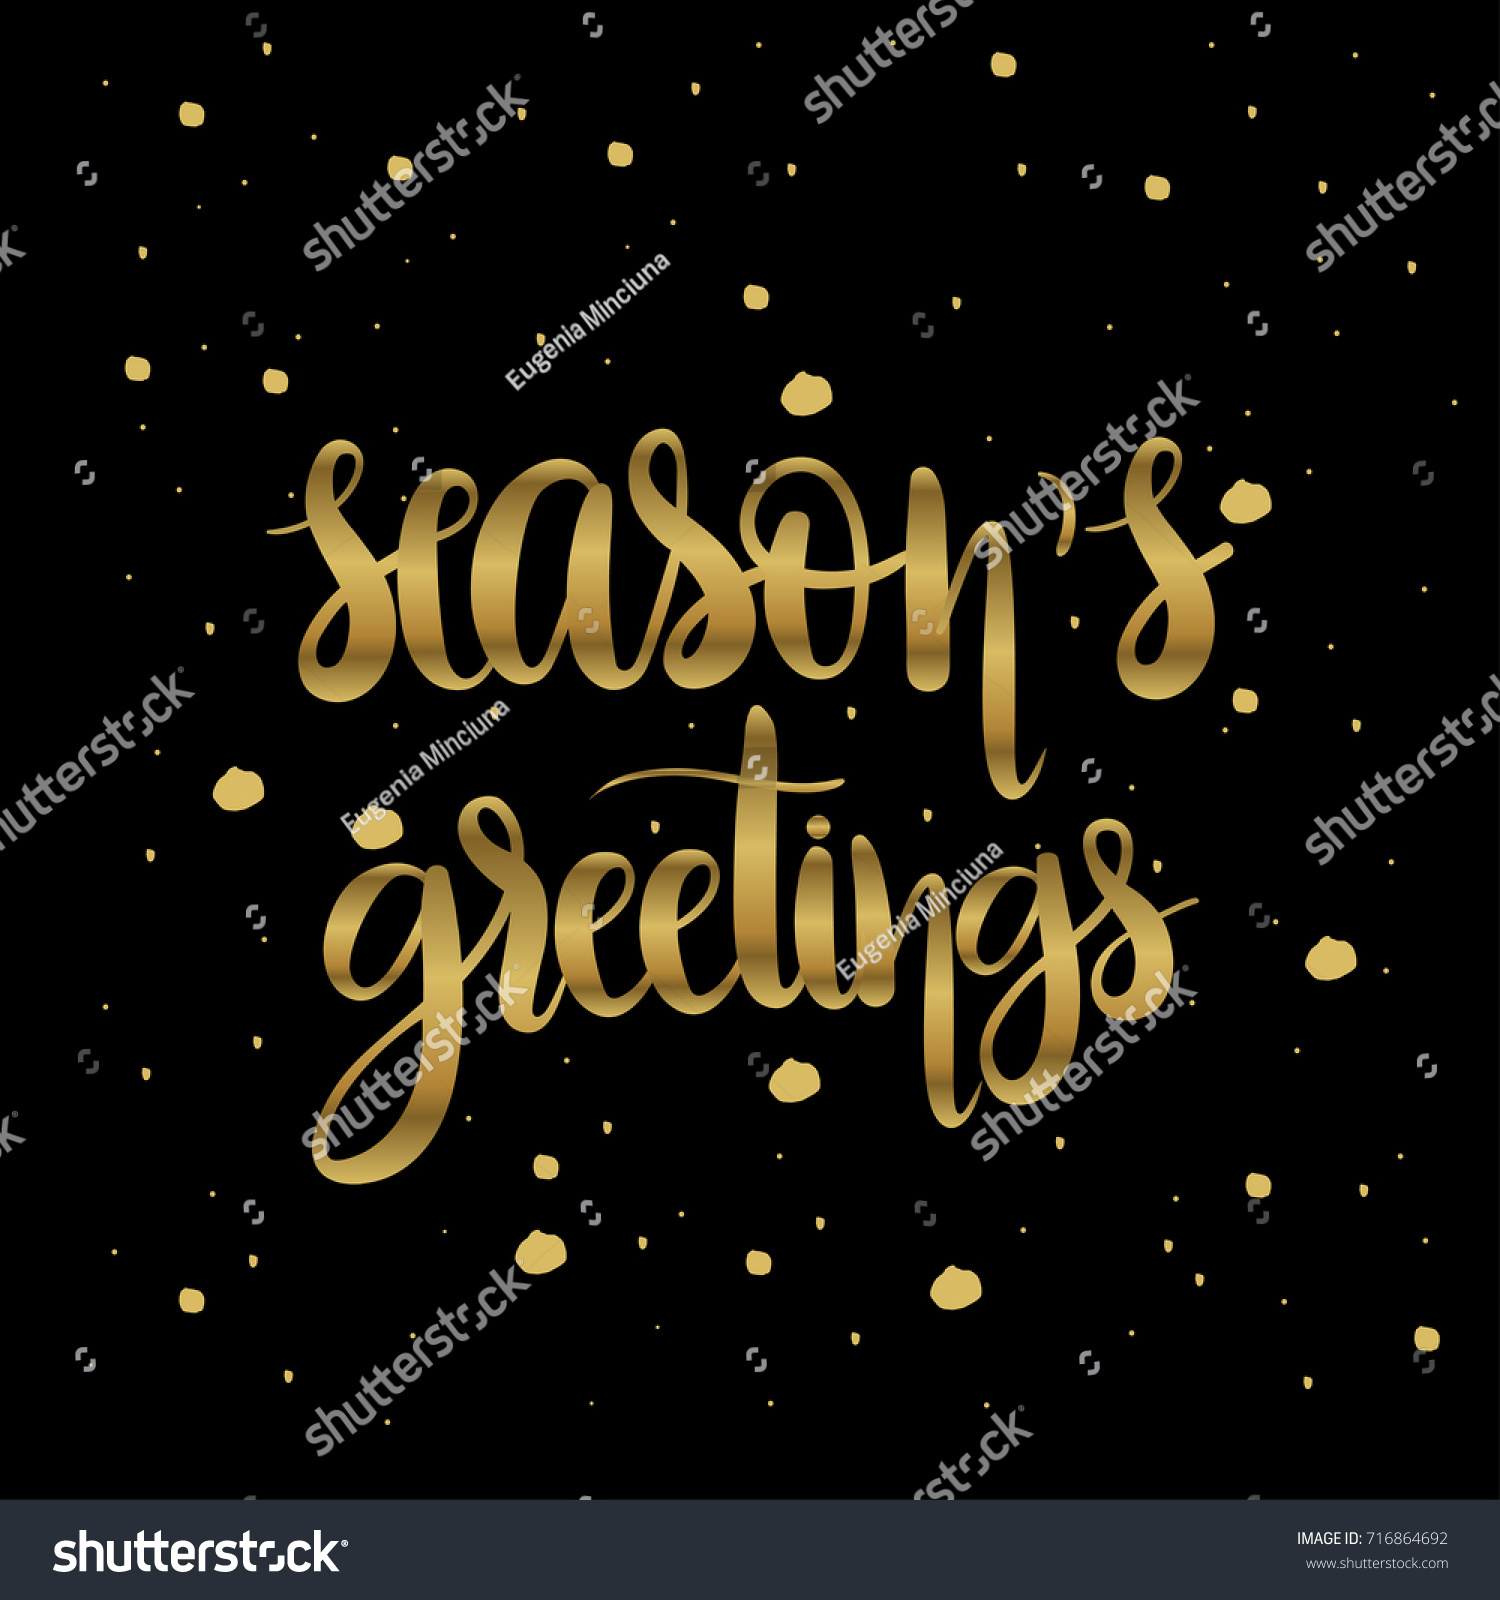 Seasons greetings unique hand drawn typographic stock vector seasons greetings unique hand drawn typographic posterctor artrfect design for cards kristyandbryce Gallery